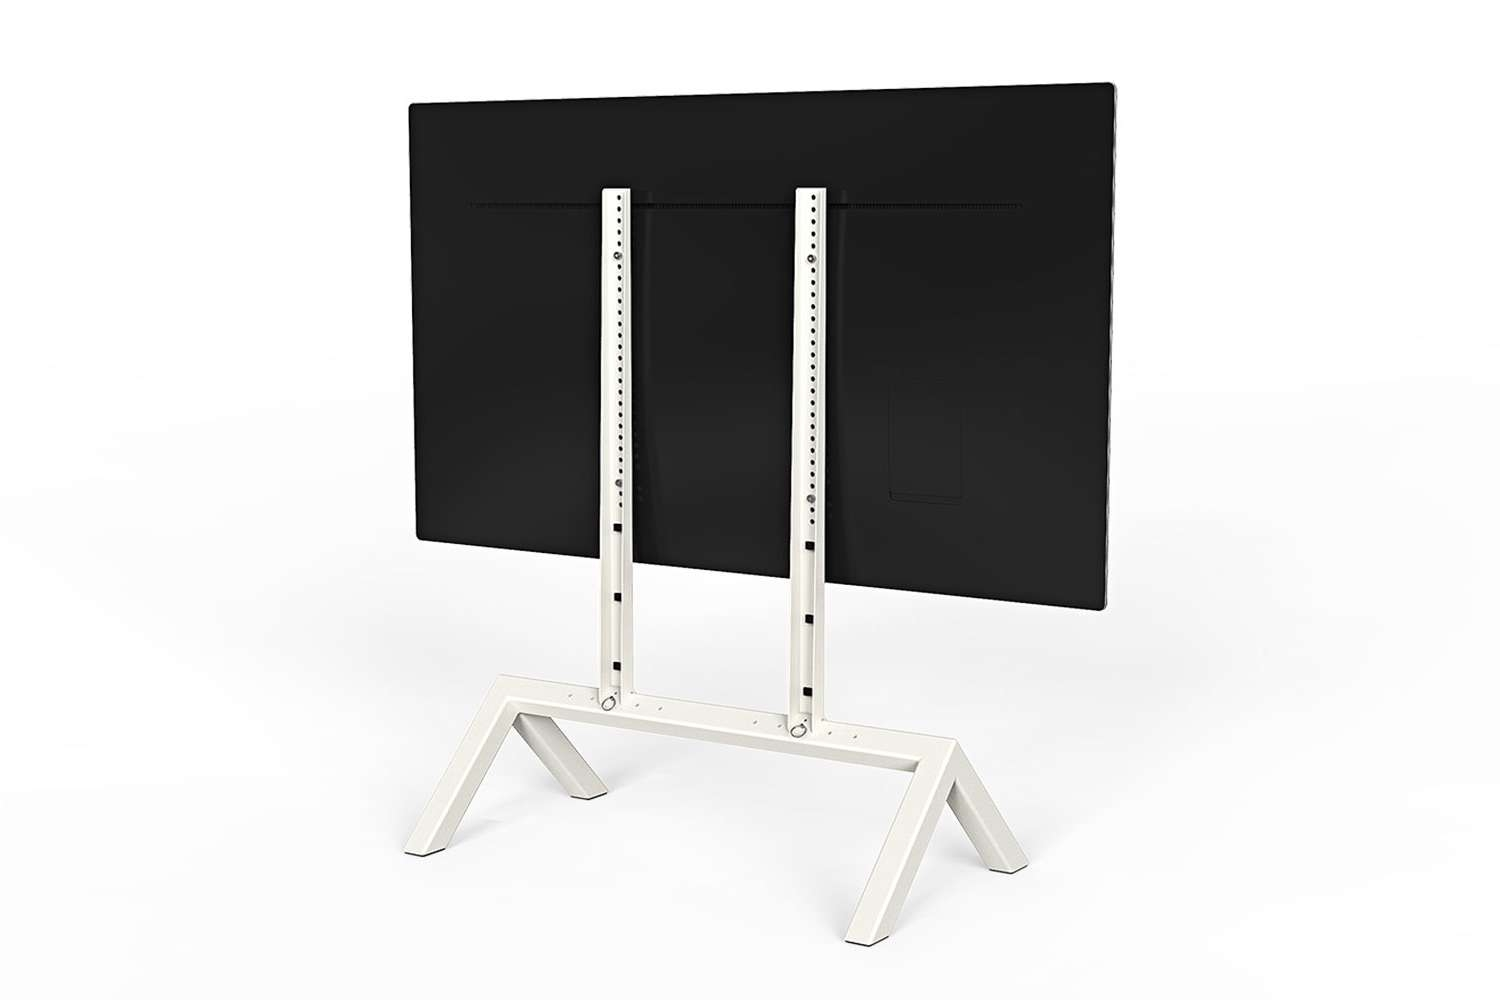 Tv : Wall Mount Adjustable Tv Stands Frightening Wall Mount With Wall Mount Adjustable Tv Stands (View 18 of 20)